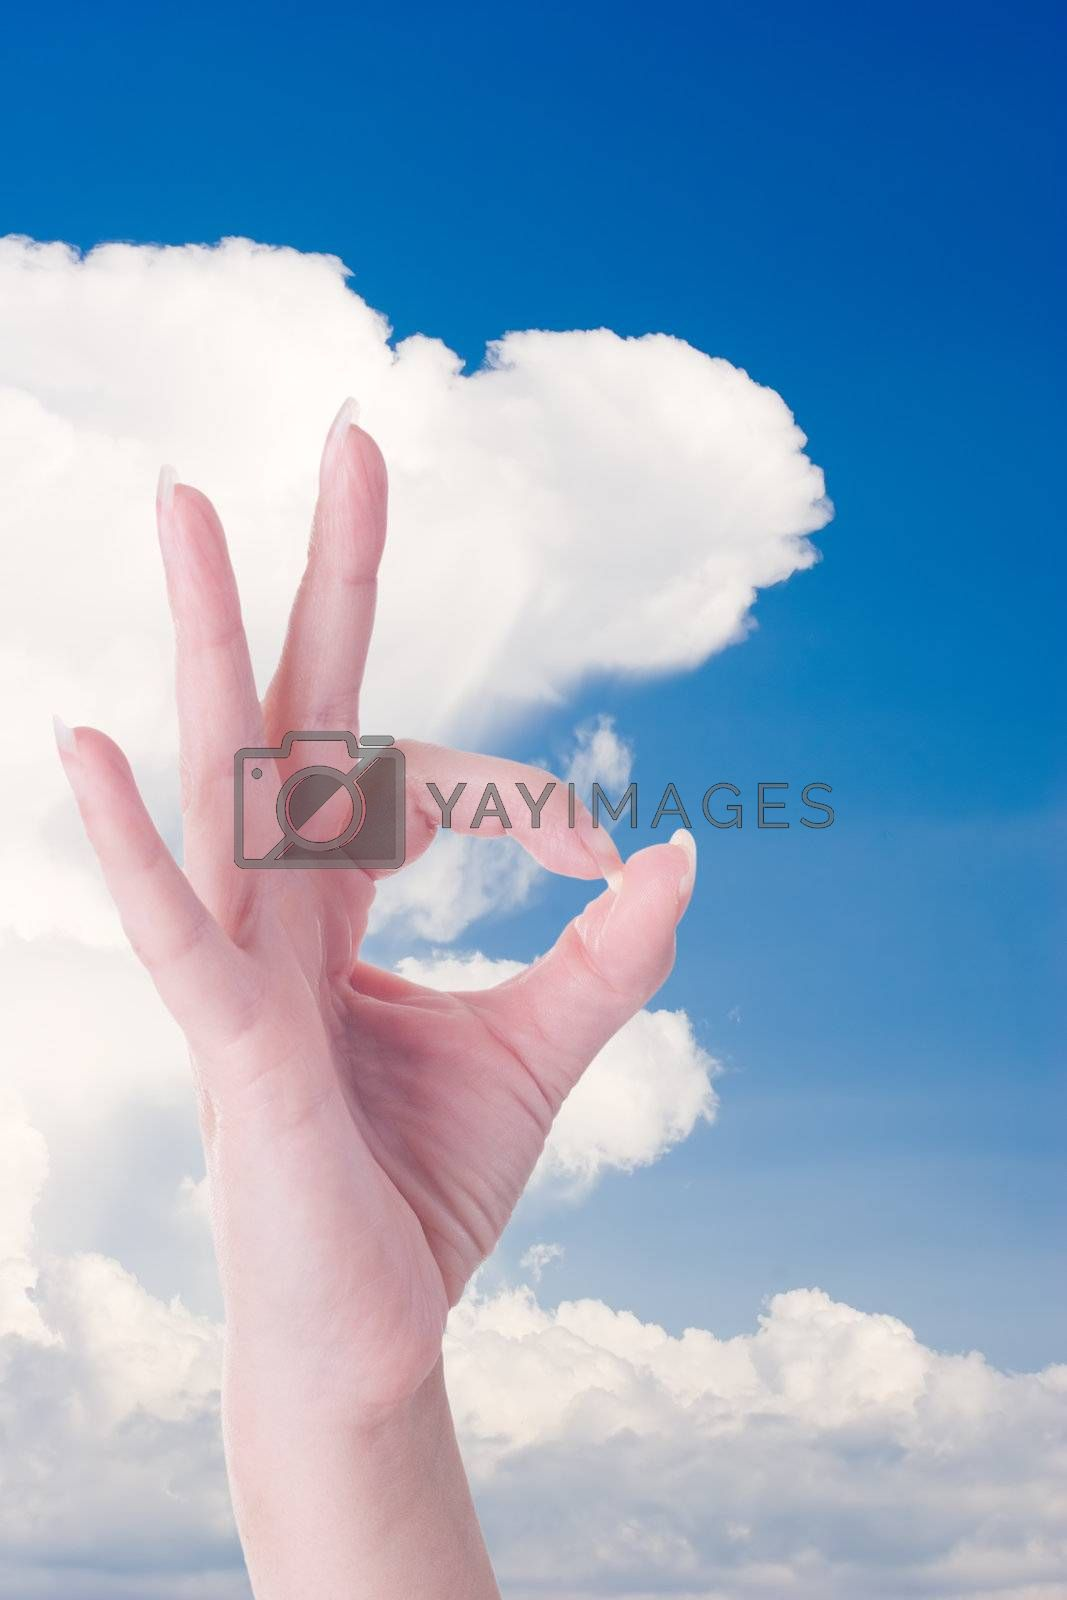 Woman hand doing an ok gesture against blue sky with cloud.